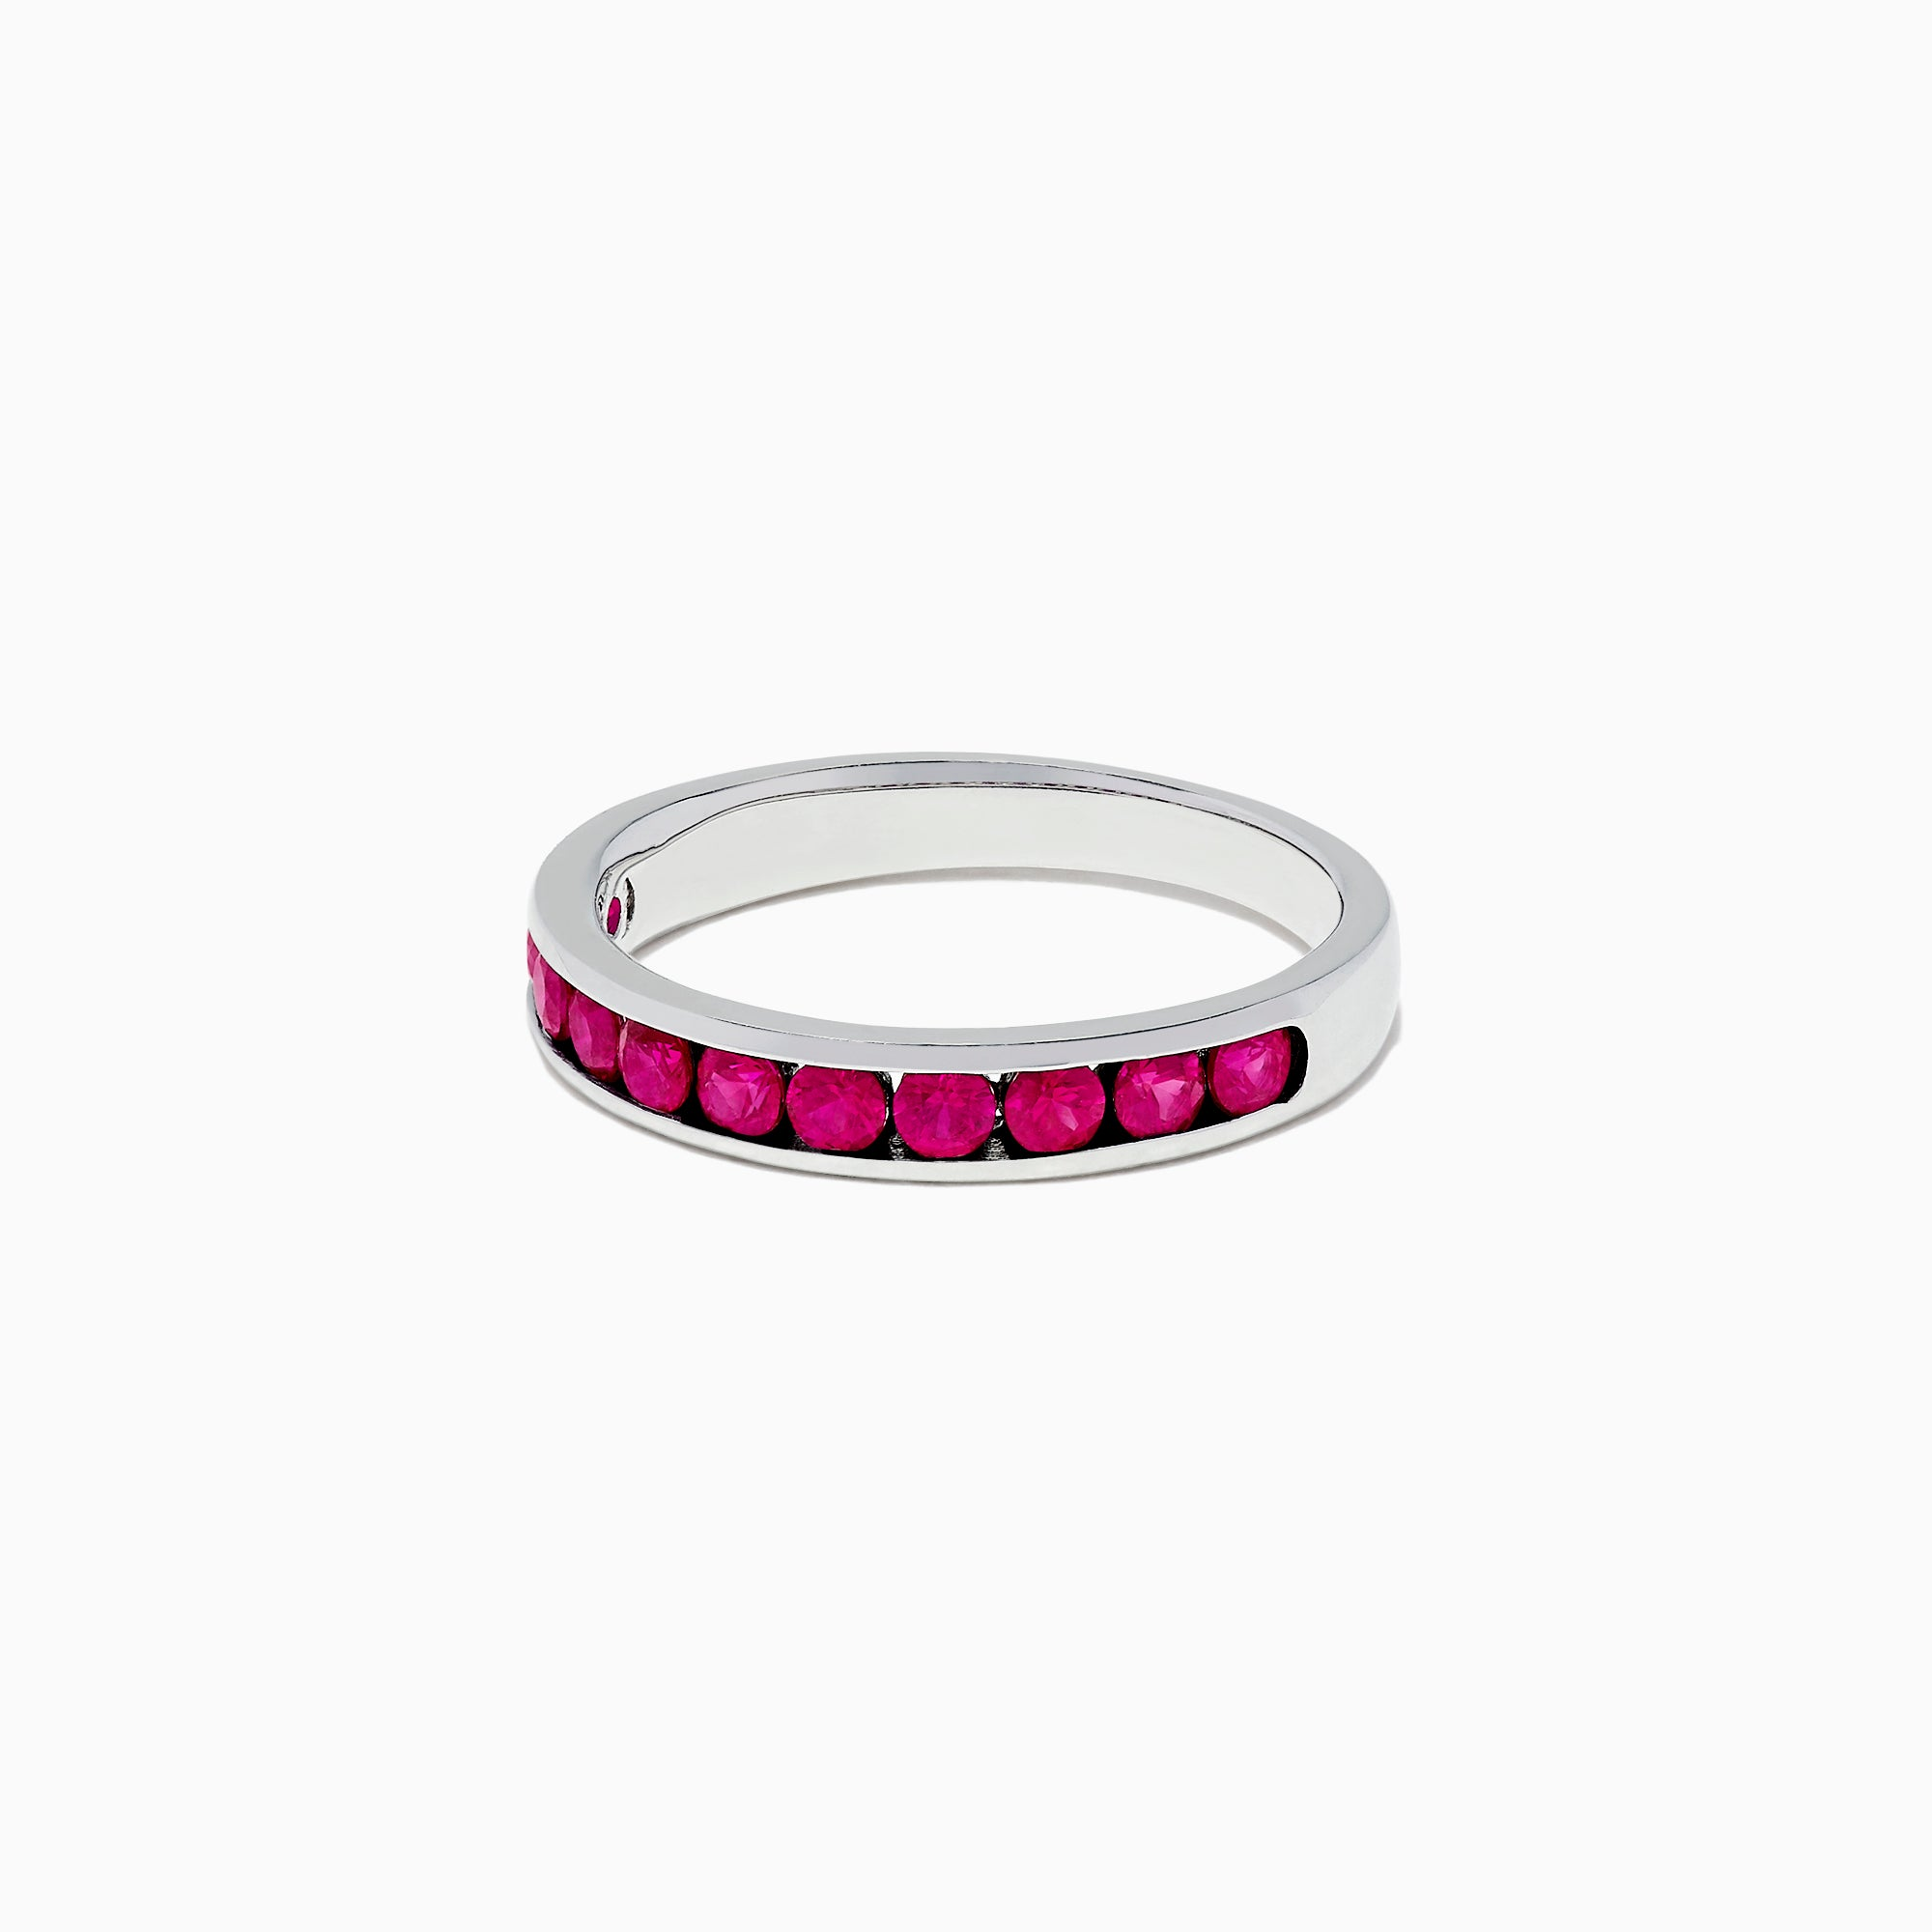 Effy Ruby Royale 14K White Gold Channel Set Ruby Ring, 0.84 TCW